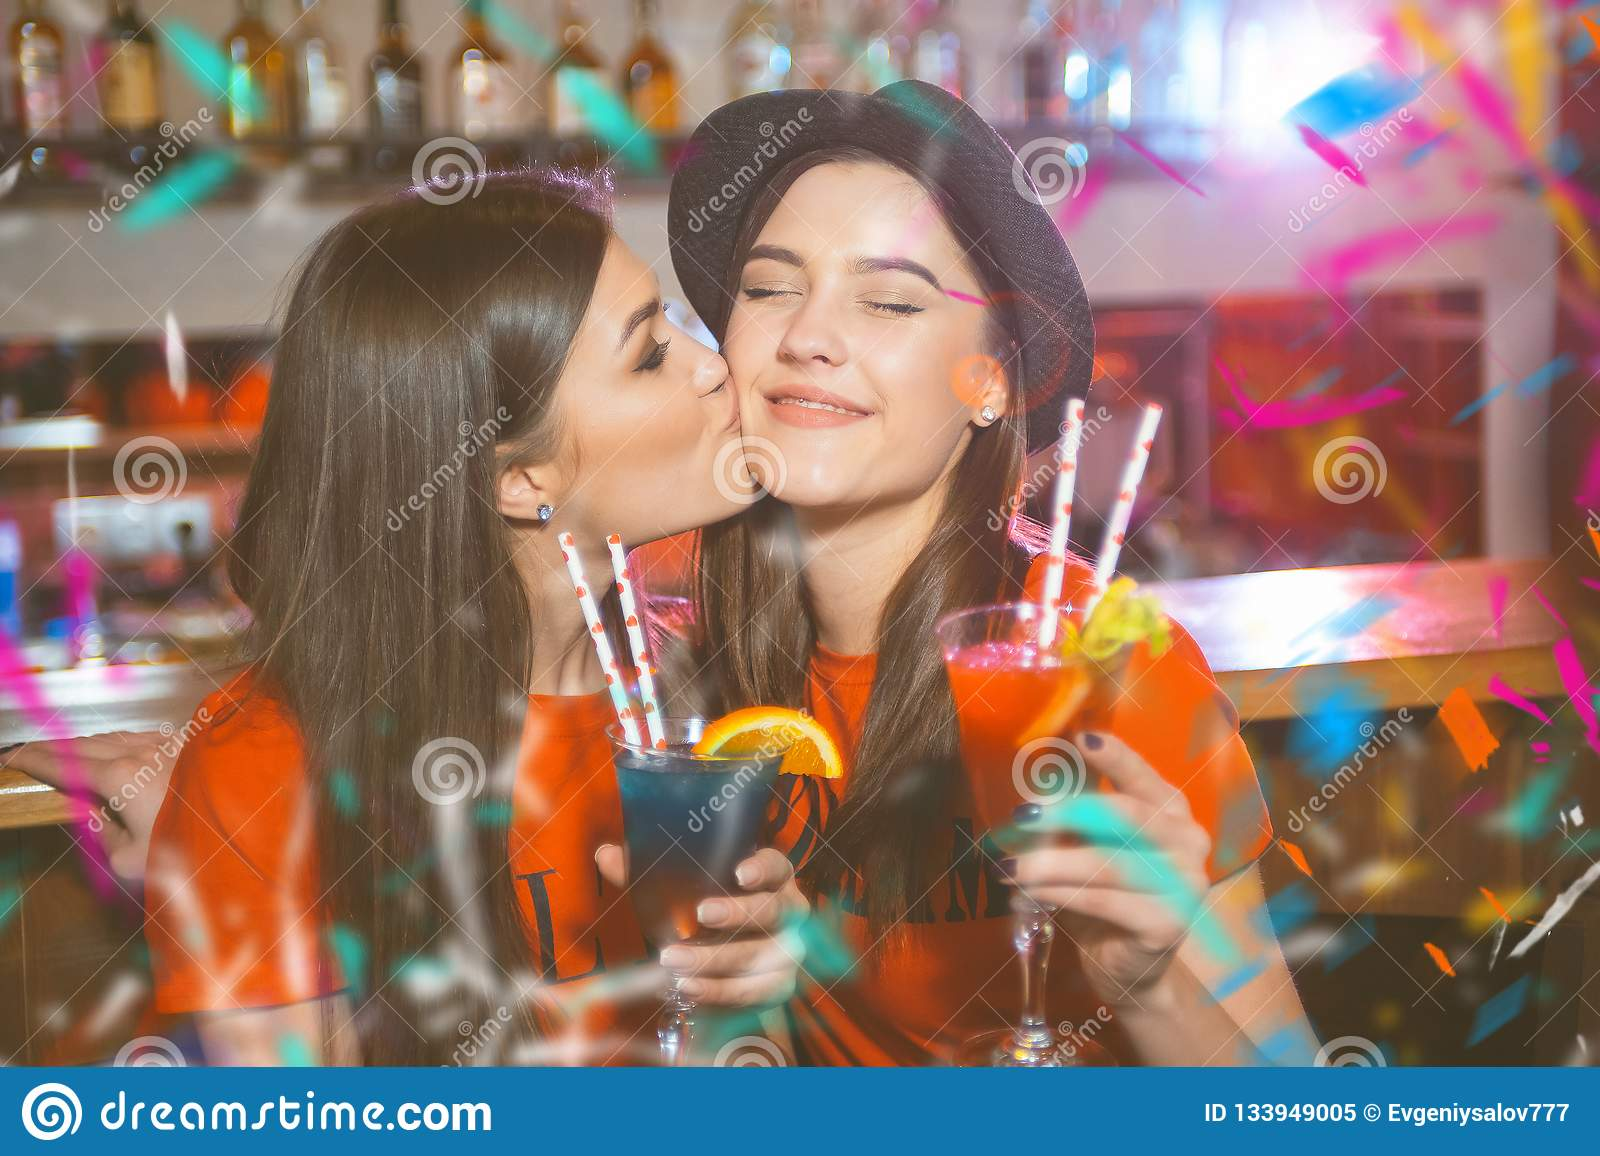 Girl at party goes lesbian